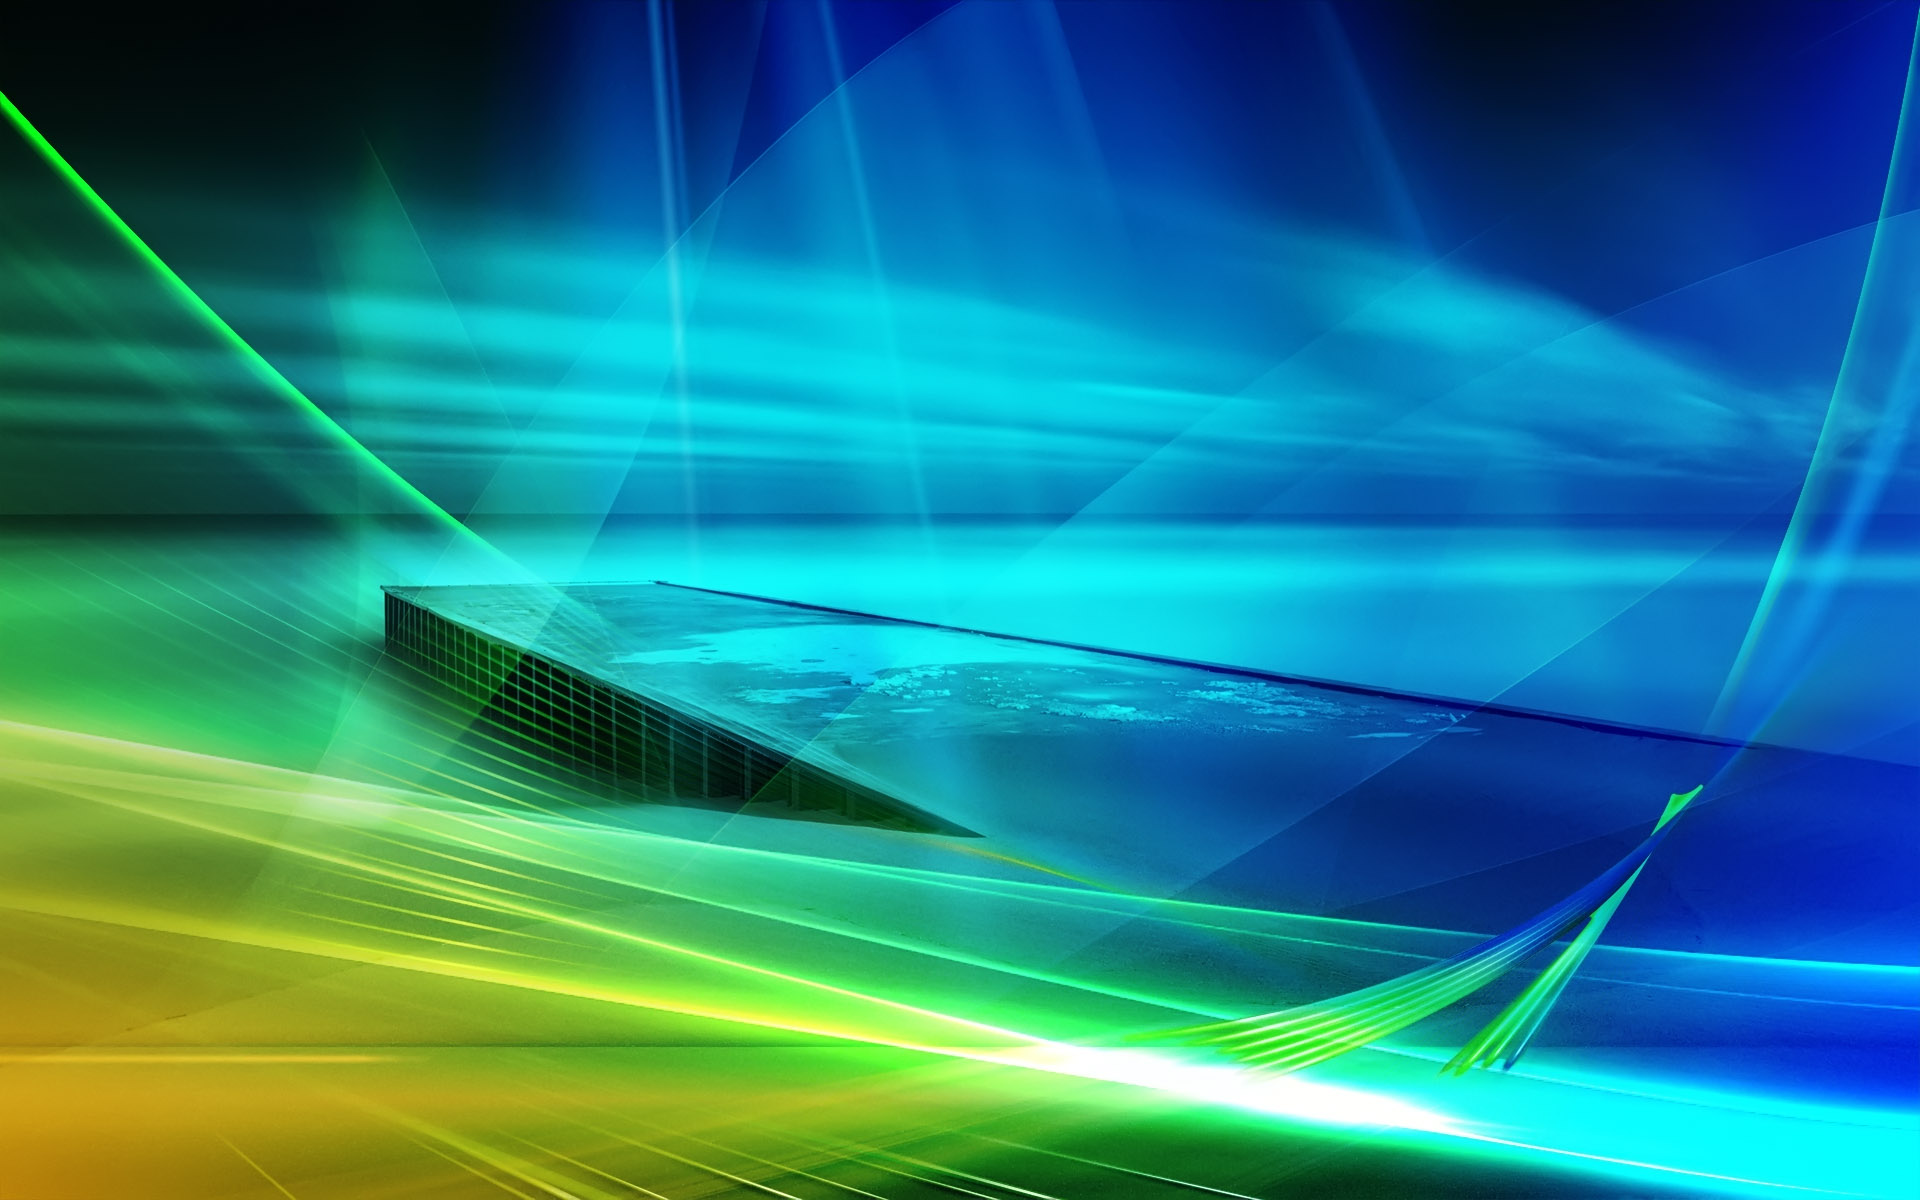 Abstract HD Wallpapers clean abstract wallpaper Wallpapereorg 1920x1200